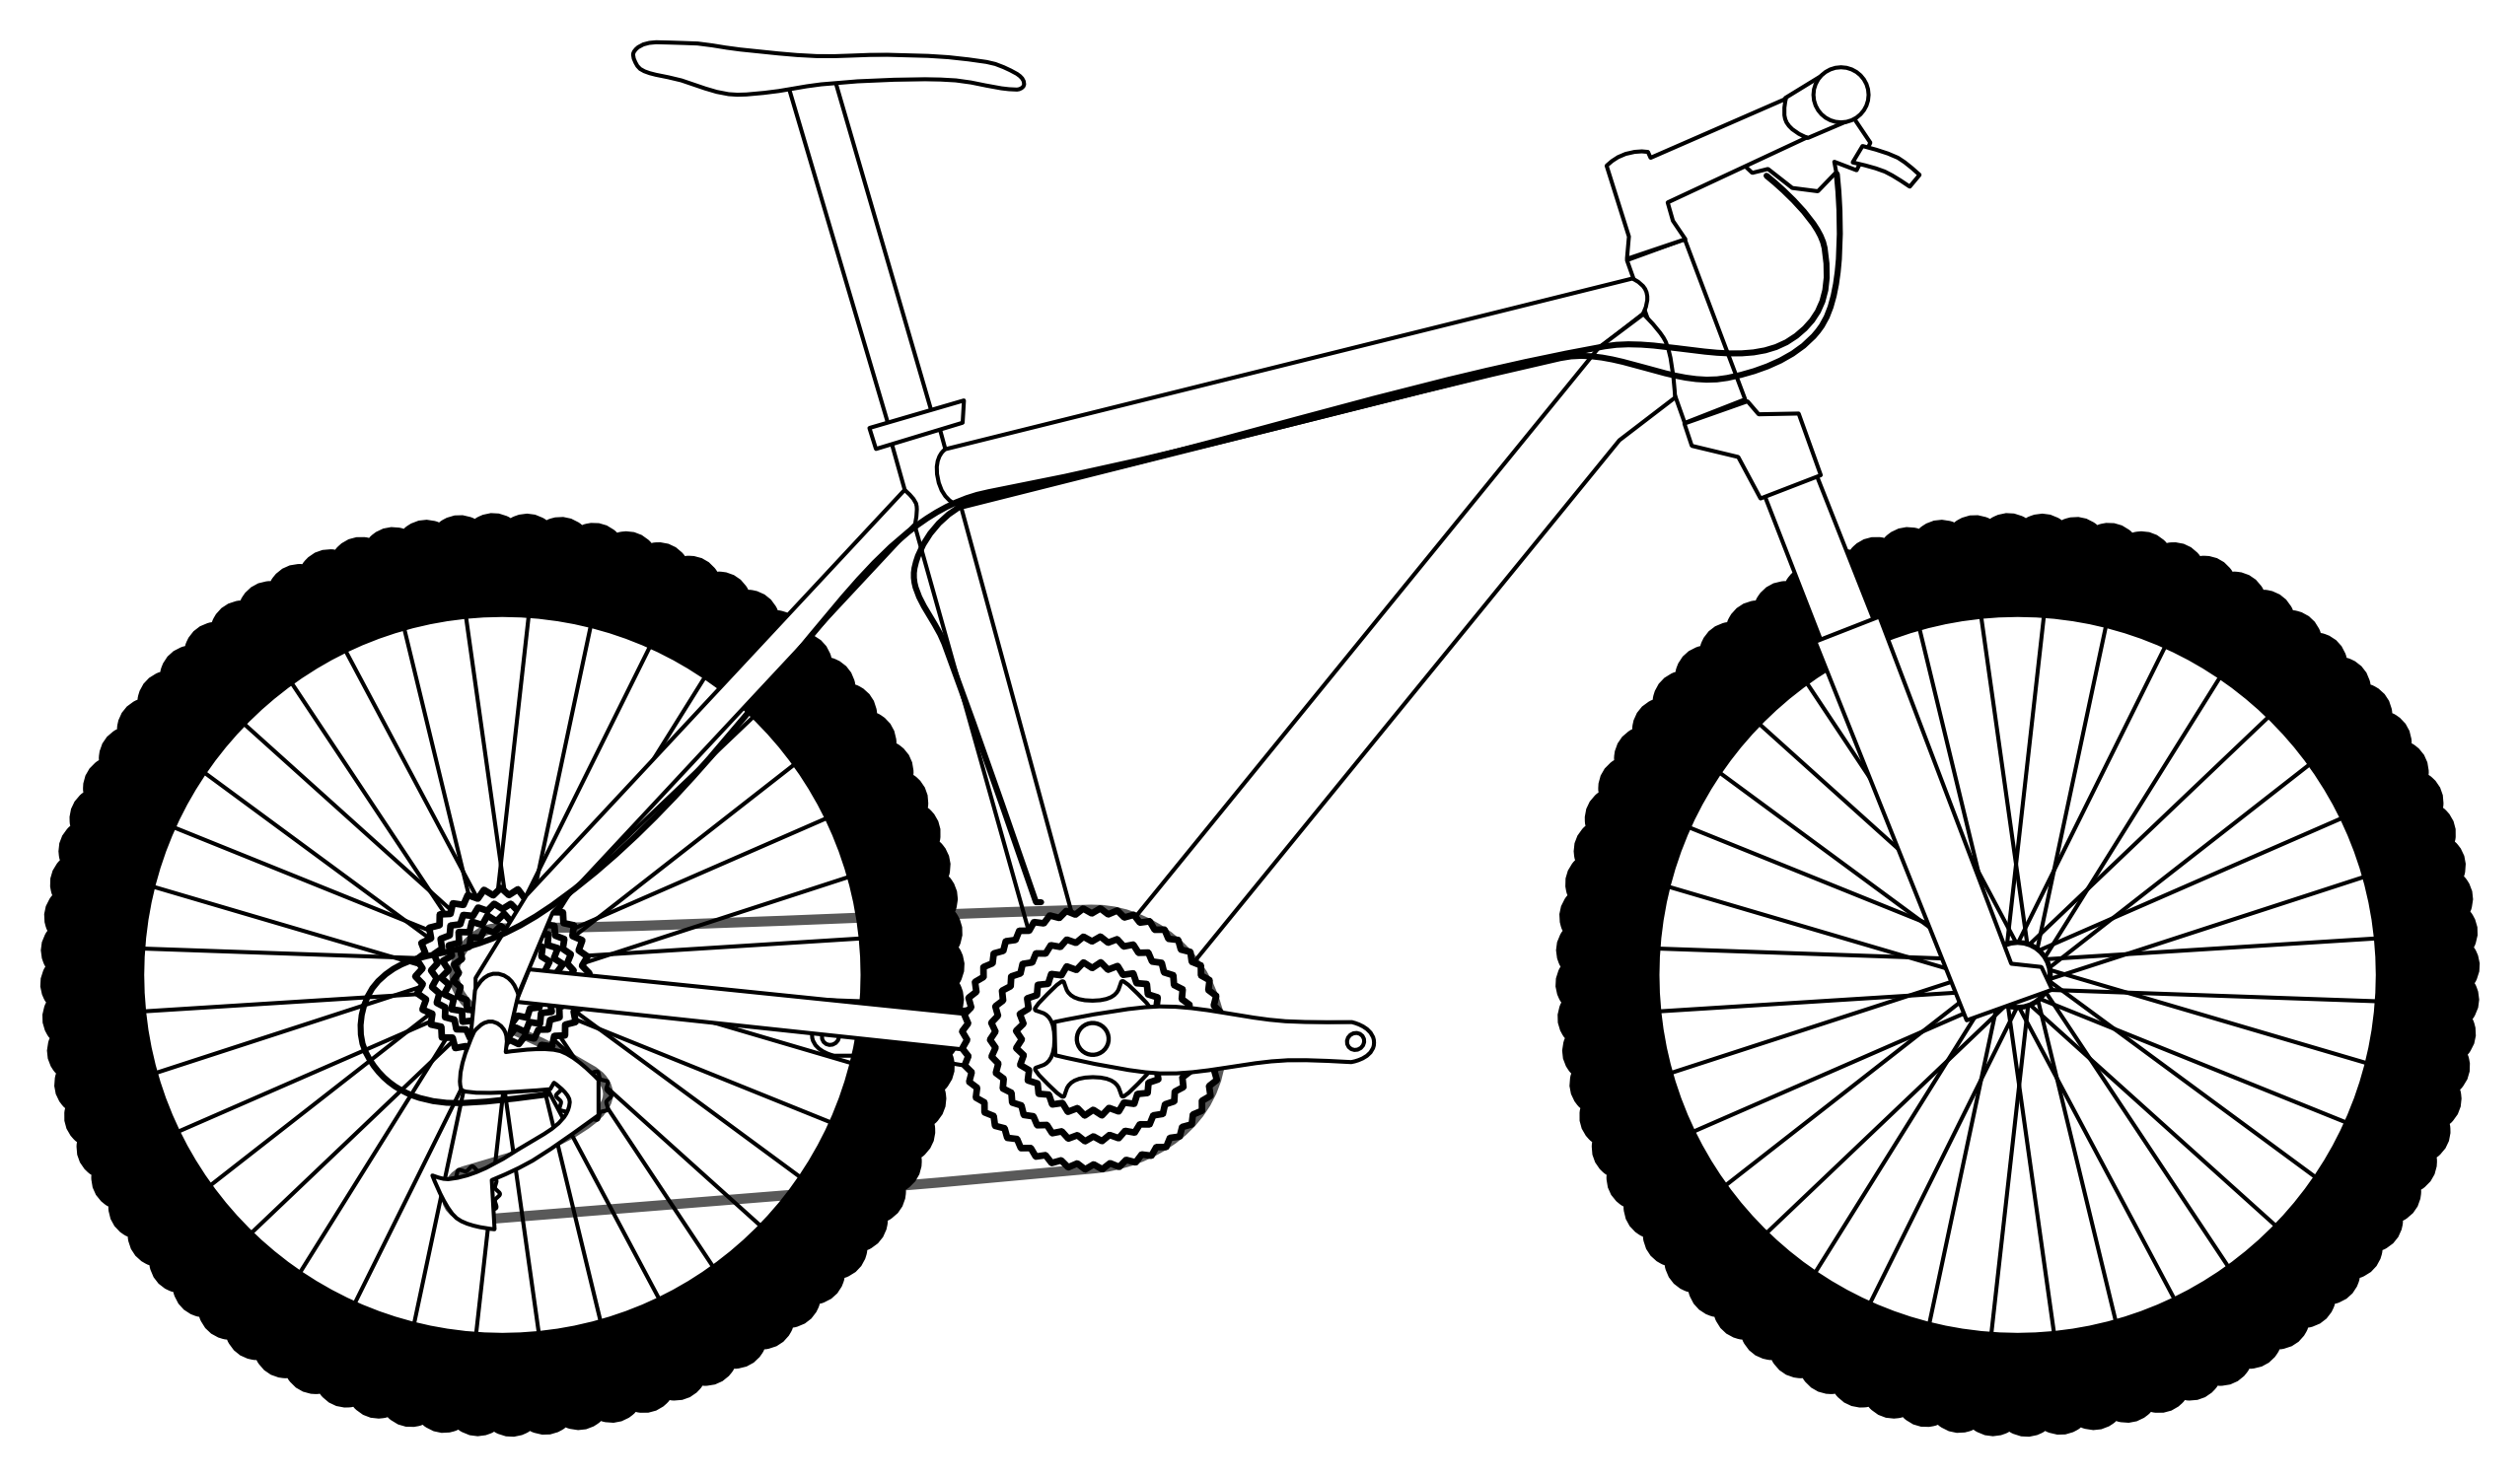 bike silhouette clip art at getdrawings com free for personal use rh getdrawings com mountain bike wheel clipart clipart mountain bike rider